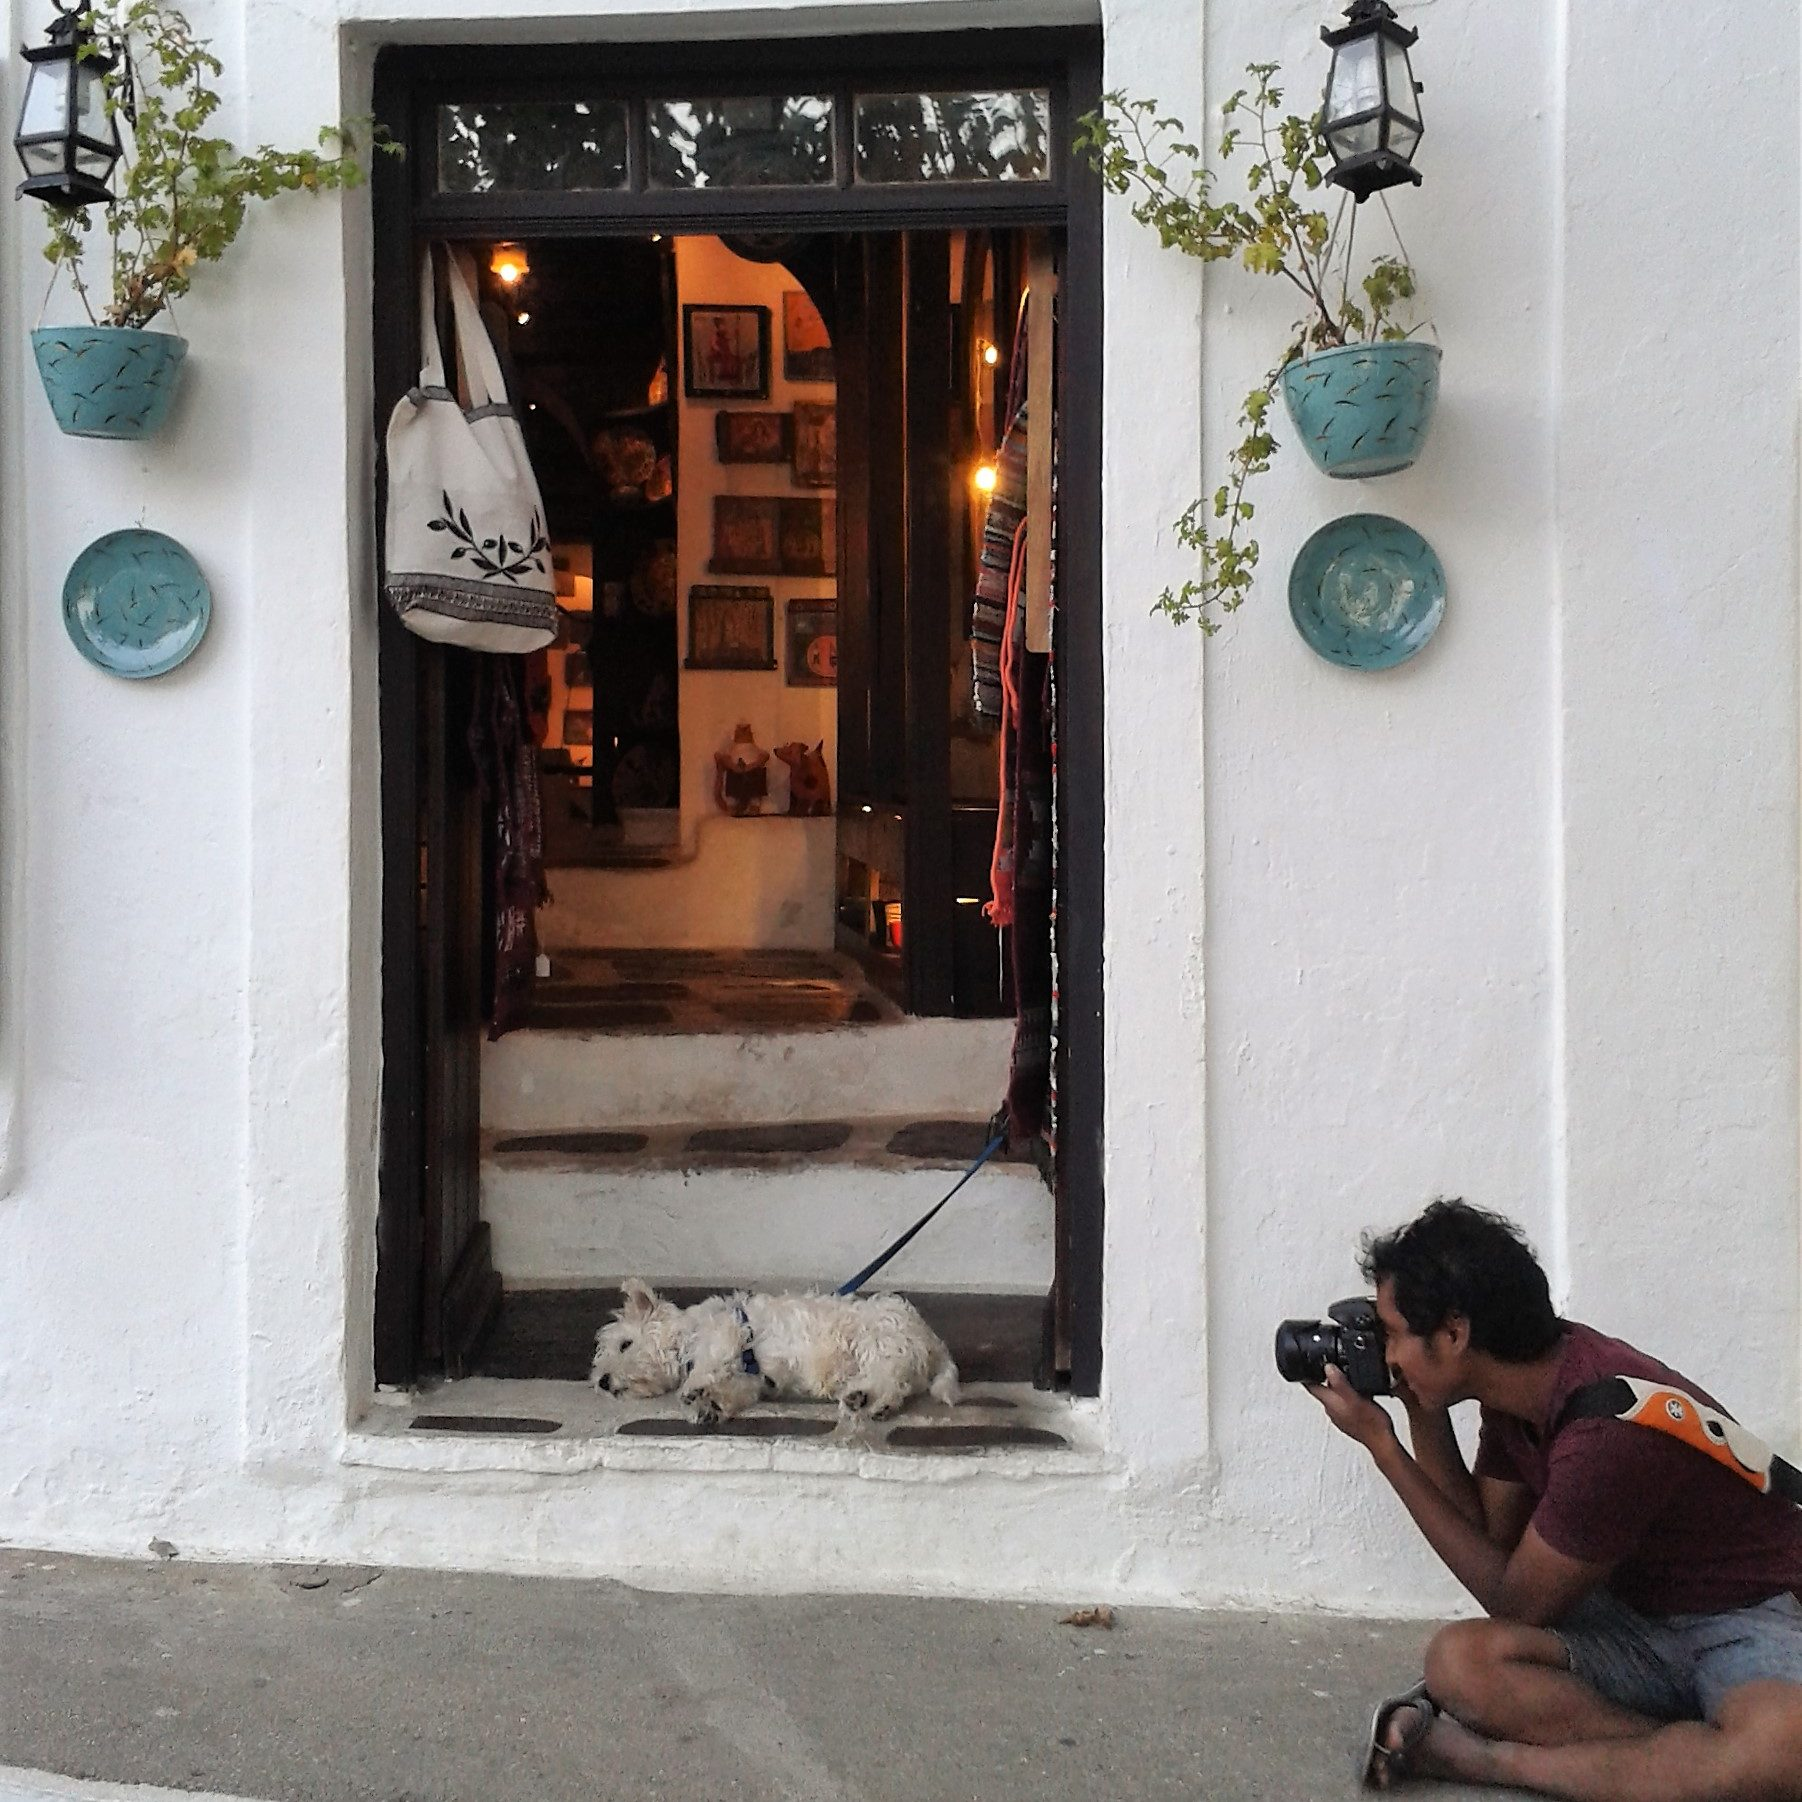 The photographer and the dog - Skopelos, Greece